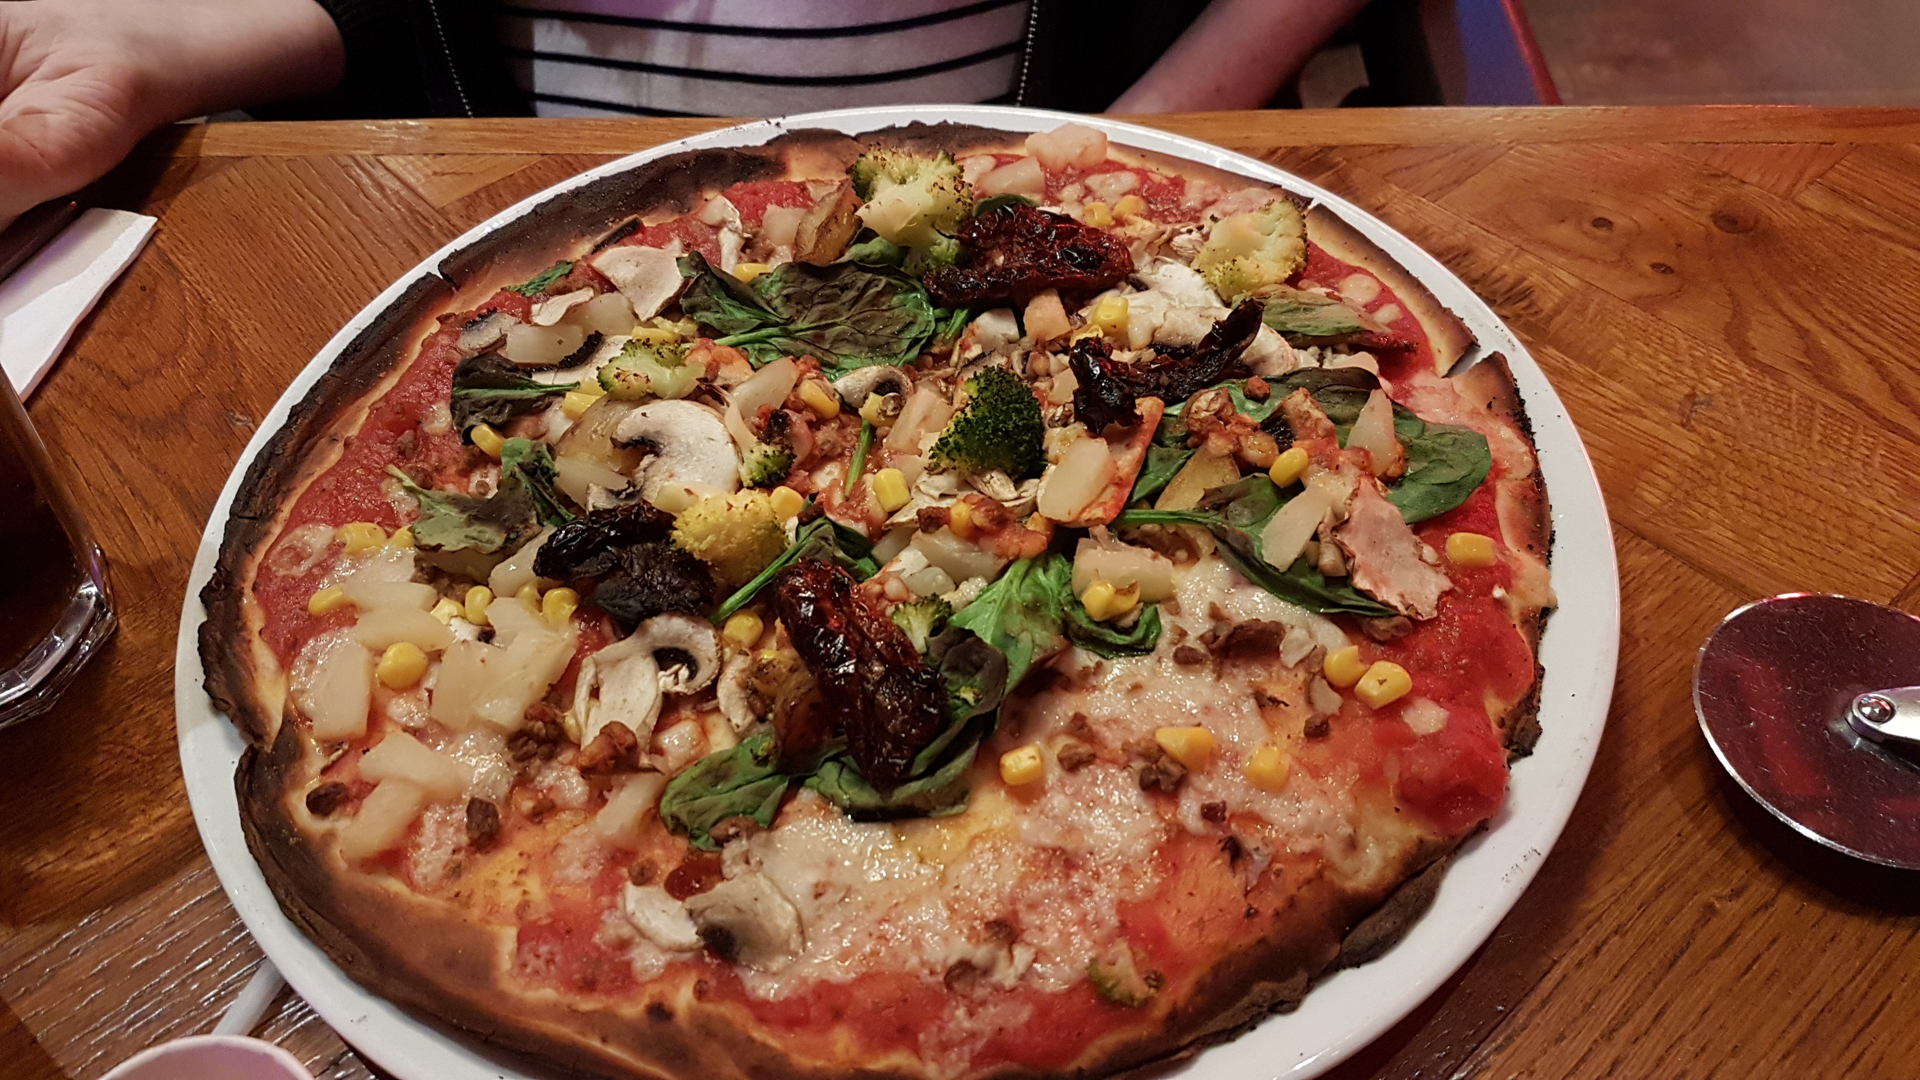 Vegan pizza from Pizza Punks Glasgow